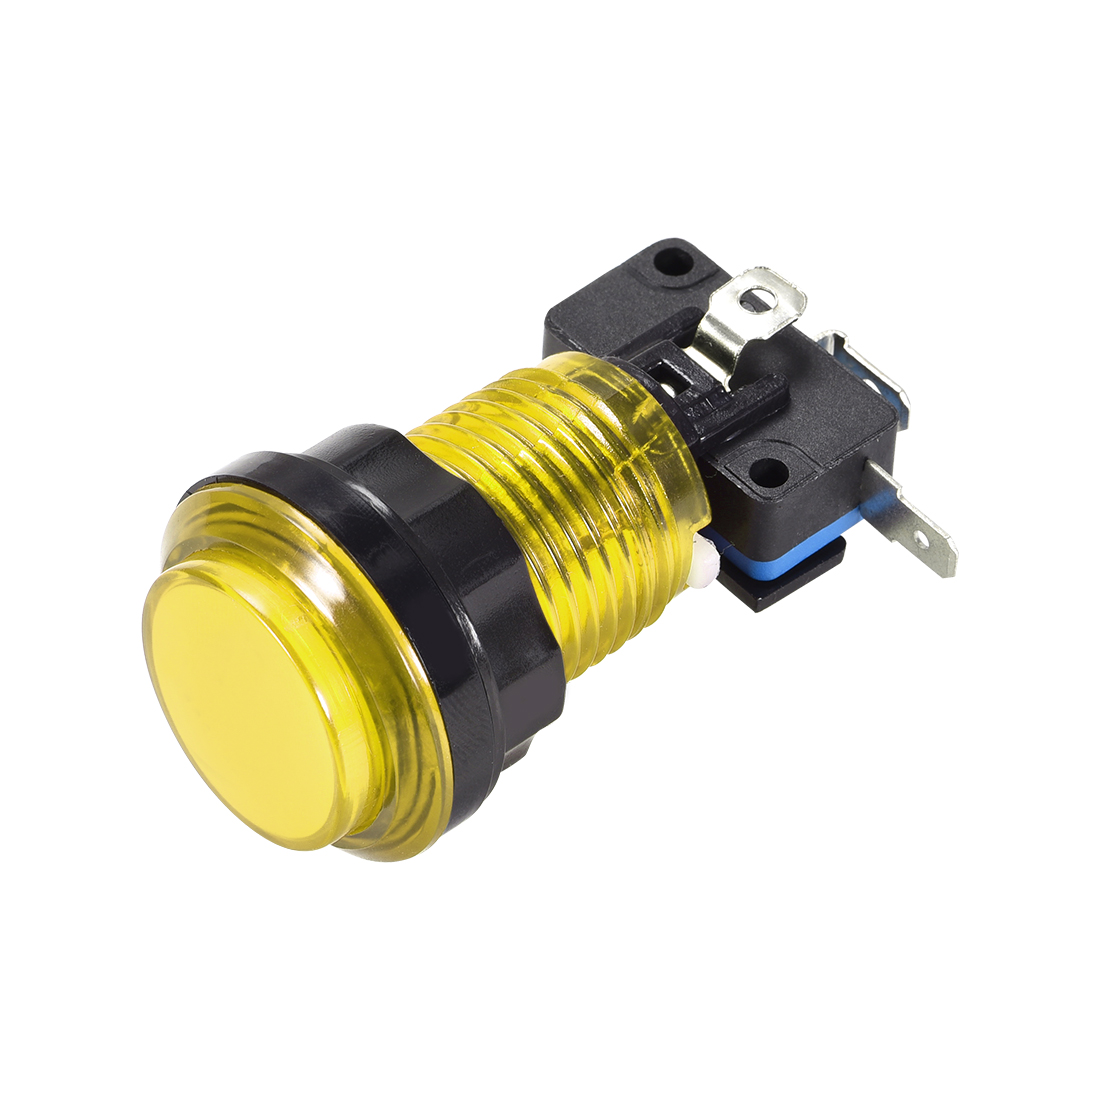 Game Push Button 33.5mm 12V LED Illuminated Switch with Micro switch Yellow 1pcs